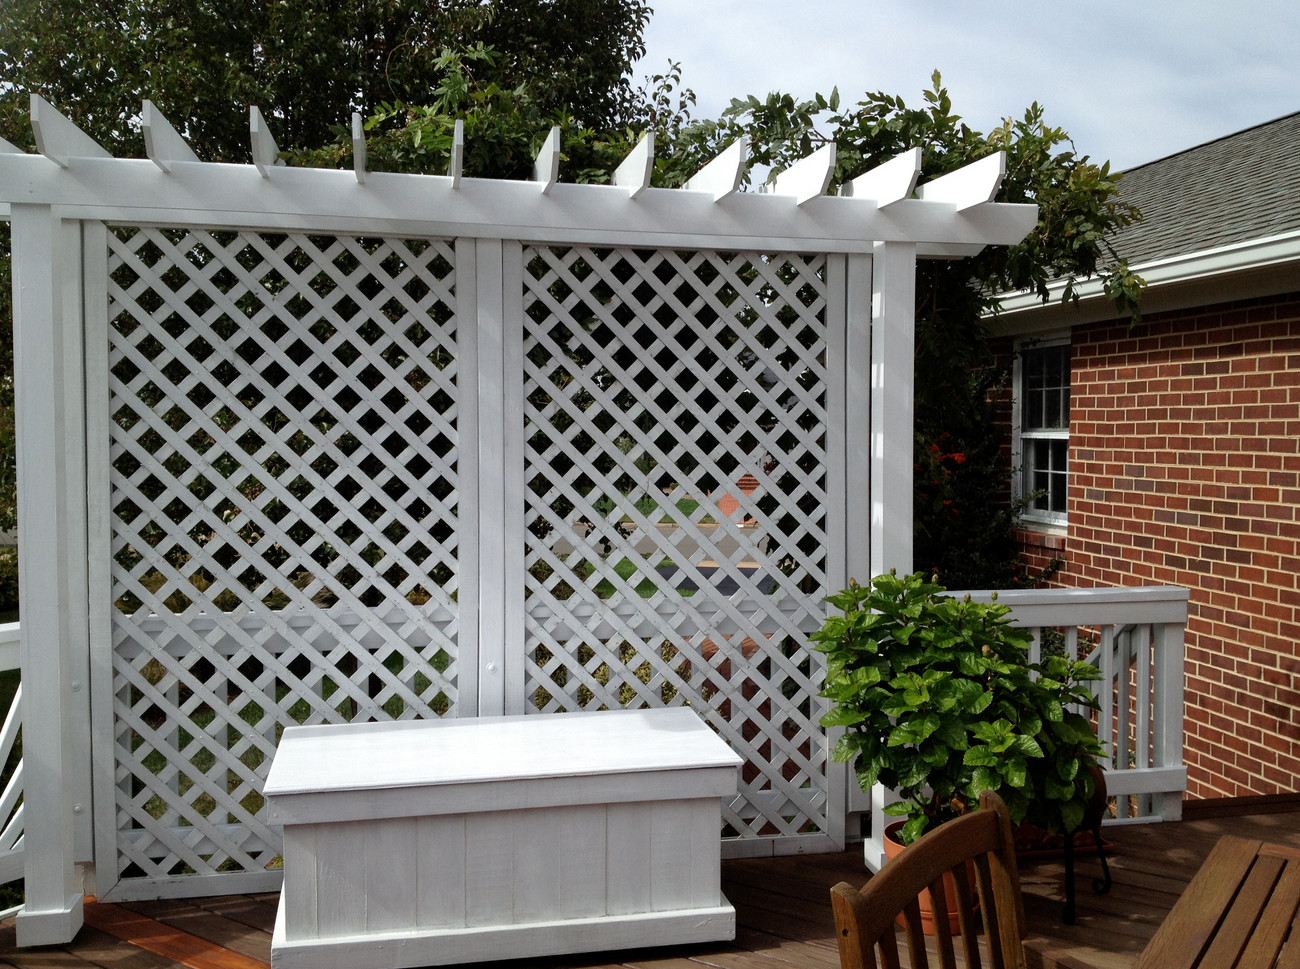 Lattice privacy screen for deck interesting ideas for home for Lattice screen fence